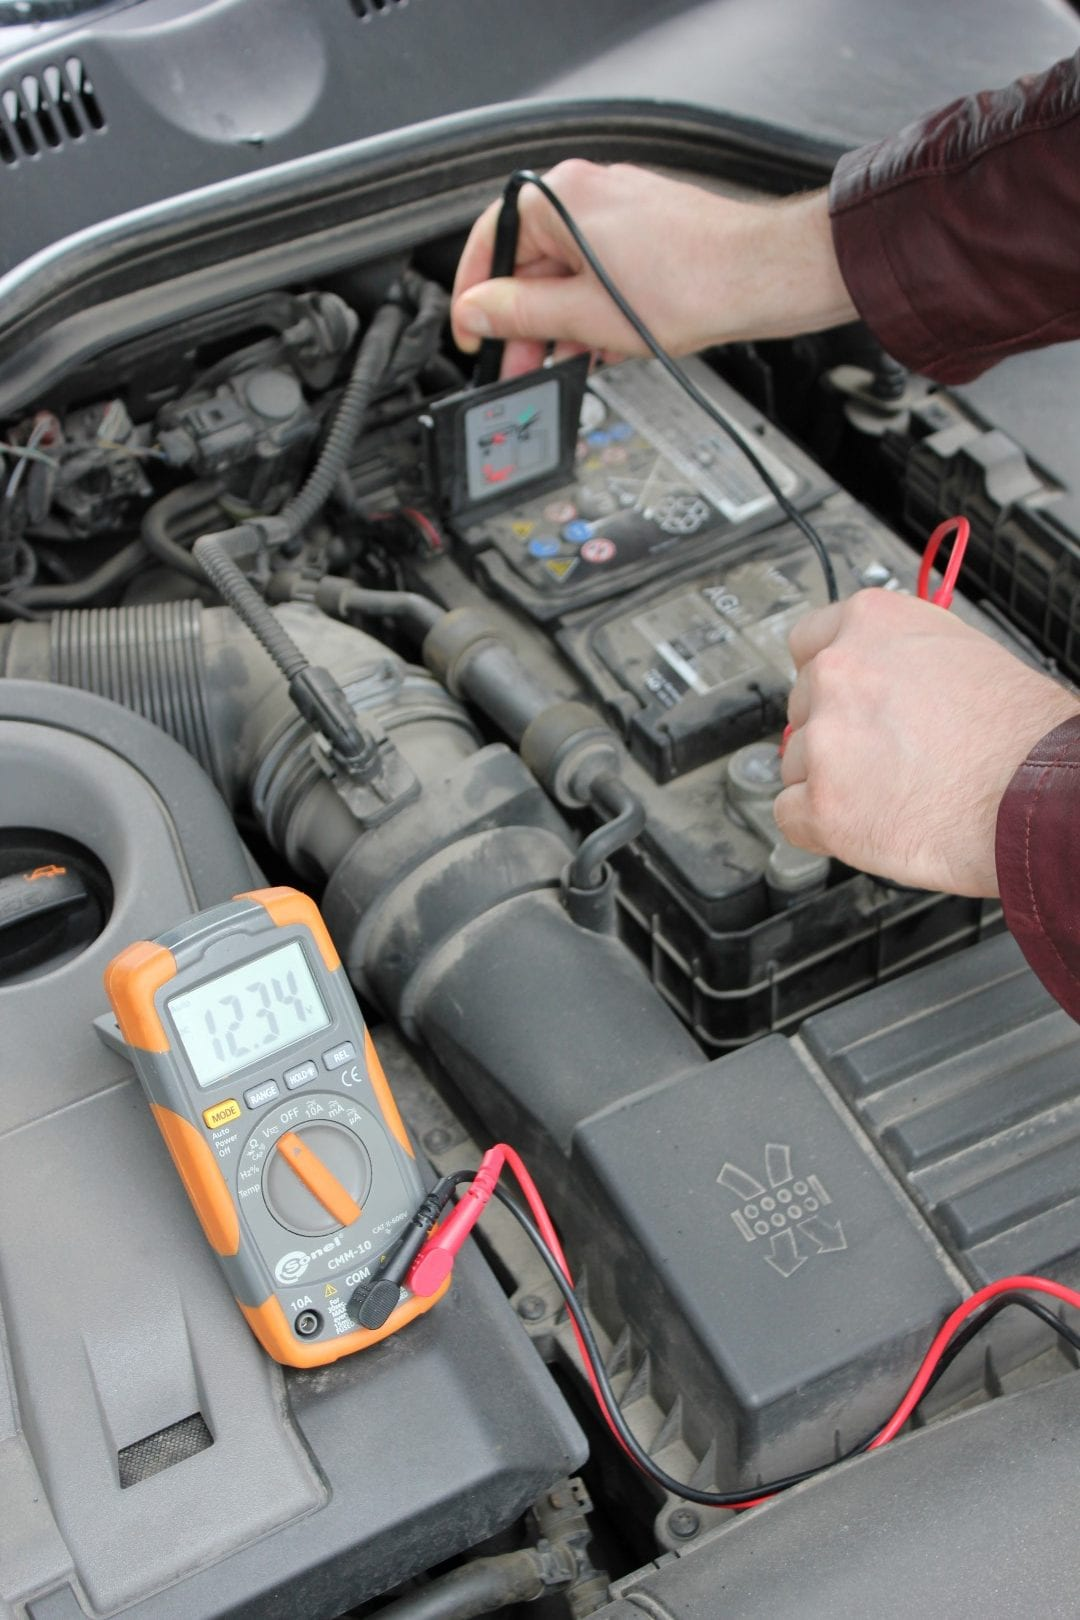 Check Car Battery Voltage With Multimeter Housetechlab